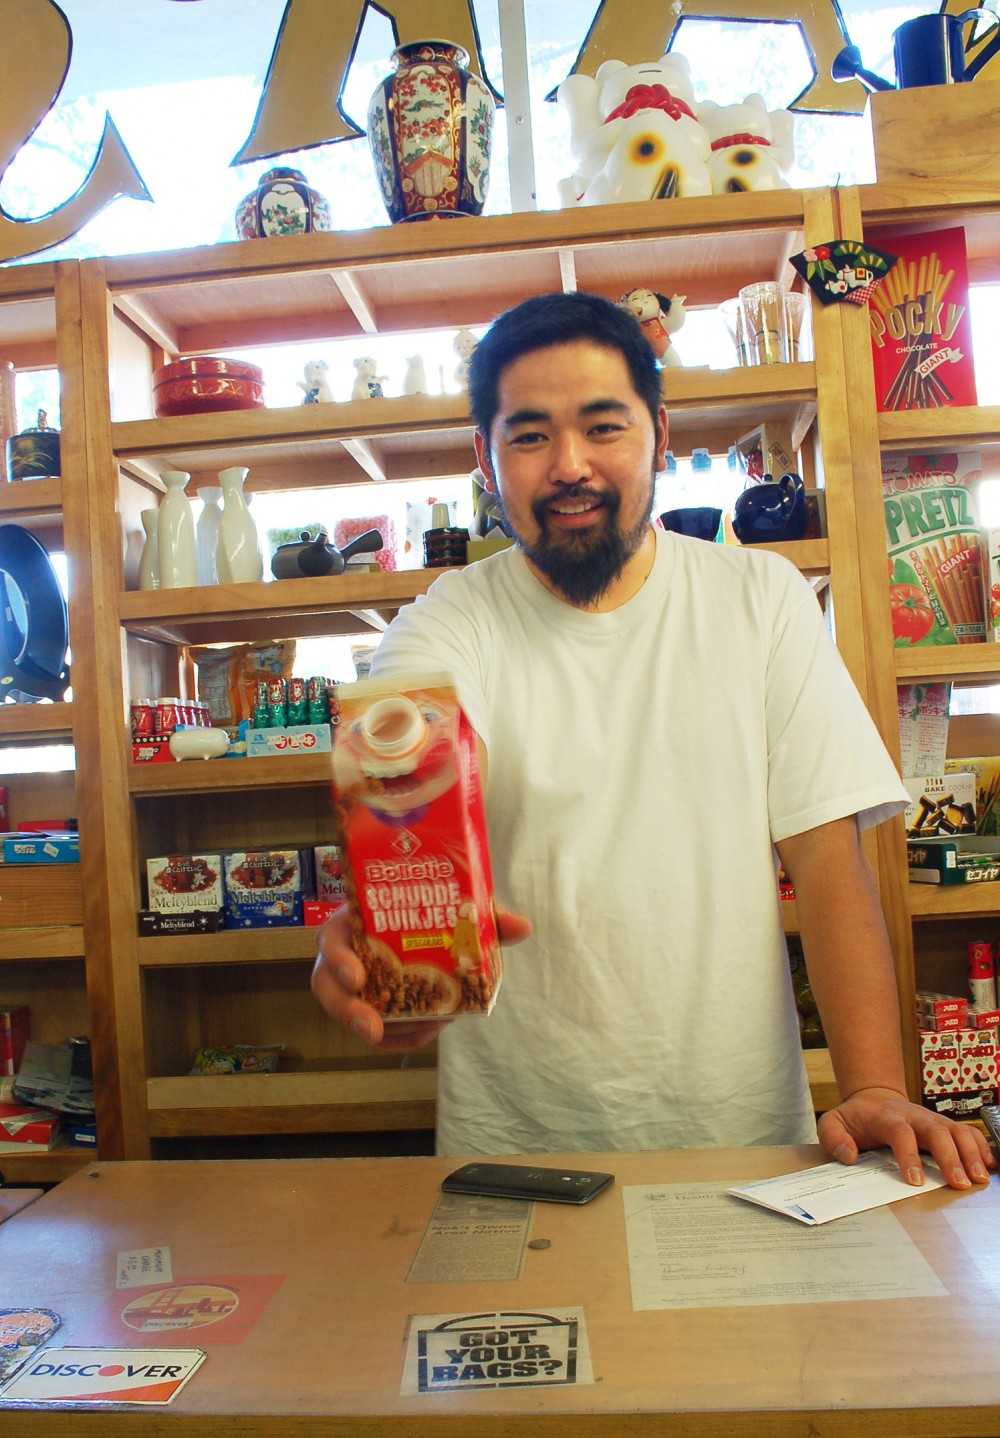 Proprietor Ken Kurose of Nak's Oriental Market freely and frequently offers samples, deals and smiles to customers of his tiny Menlo Park store. Photo: Susan Hathaway